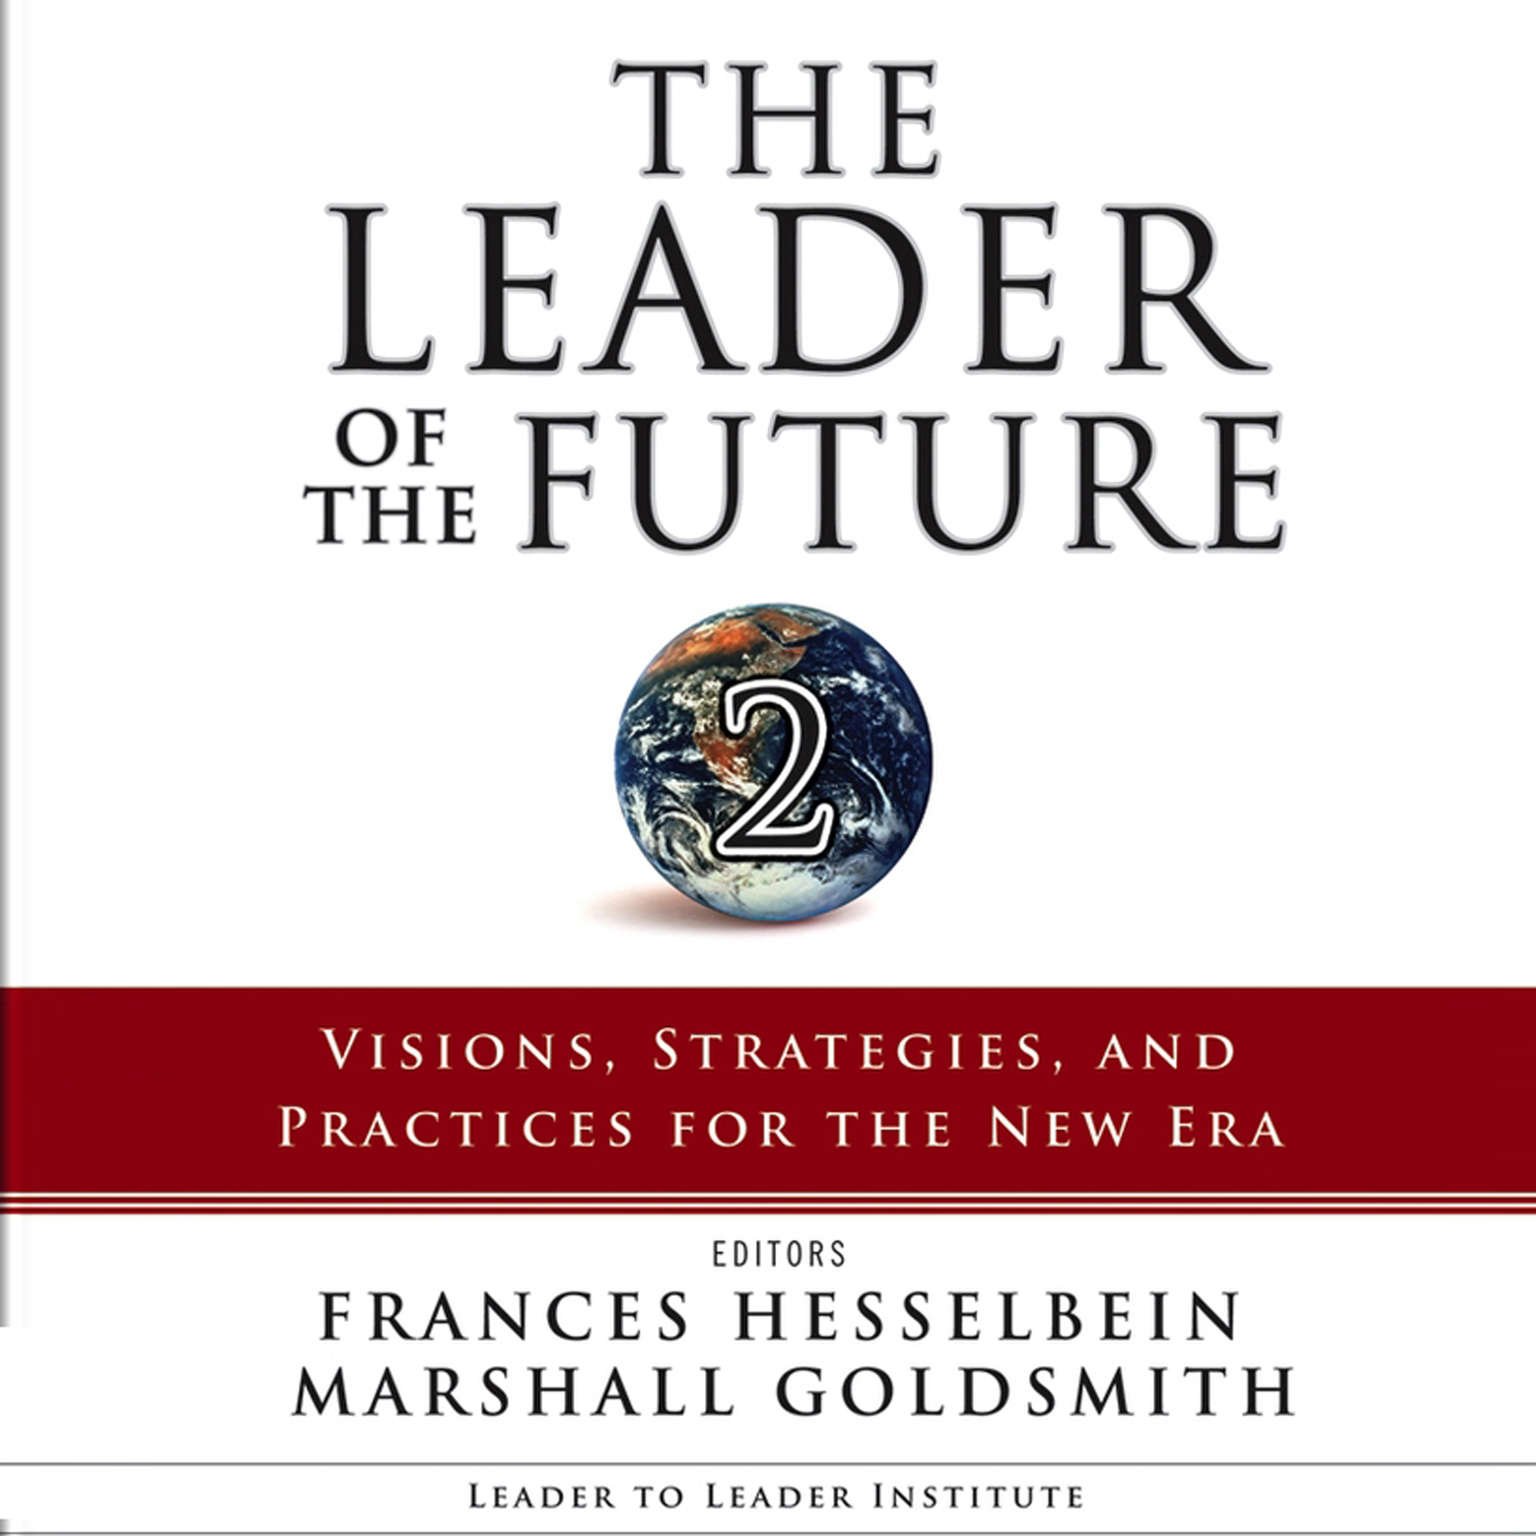 The Leader of the Future 2: Visions, Strategies, and Practices for the New Era Audiobook, by Frances Hesselbein